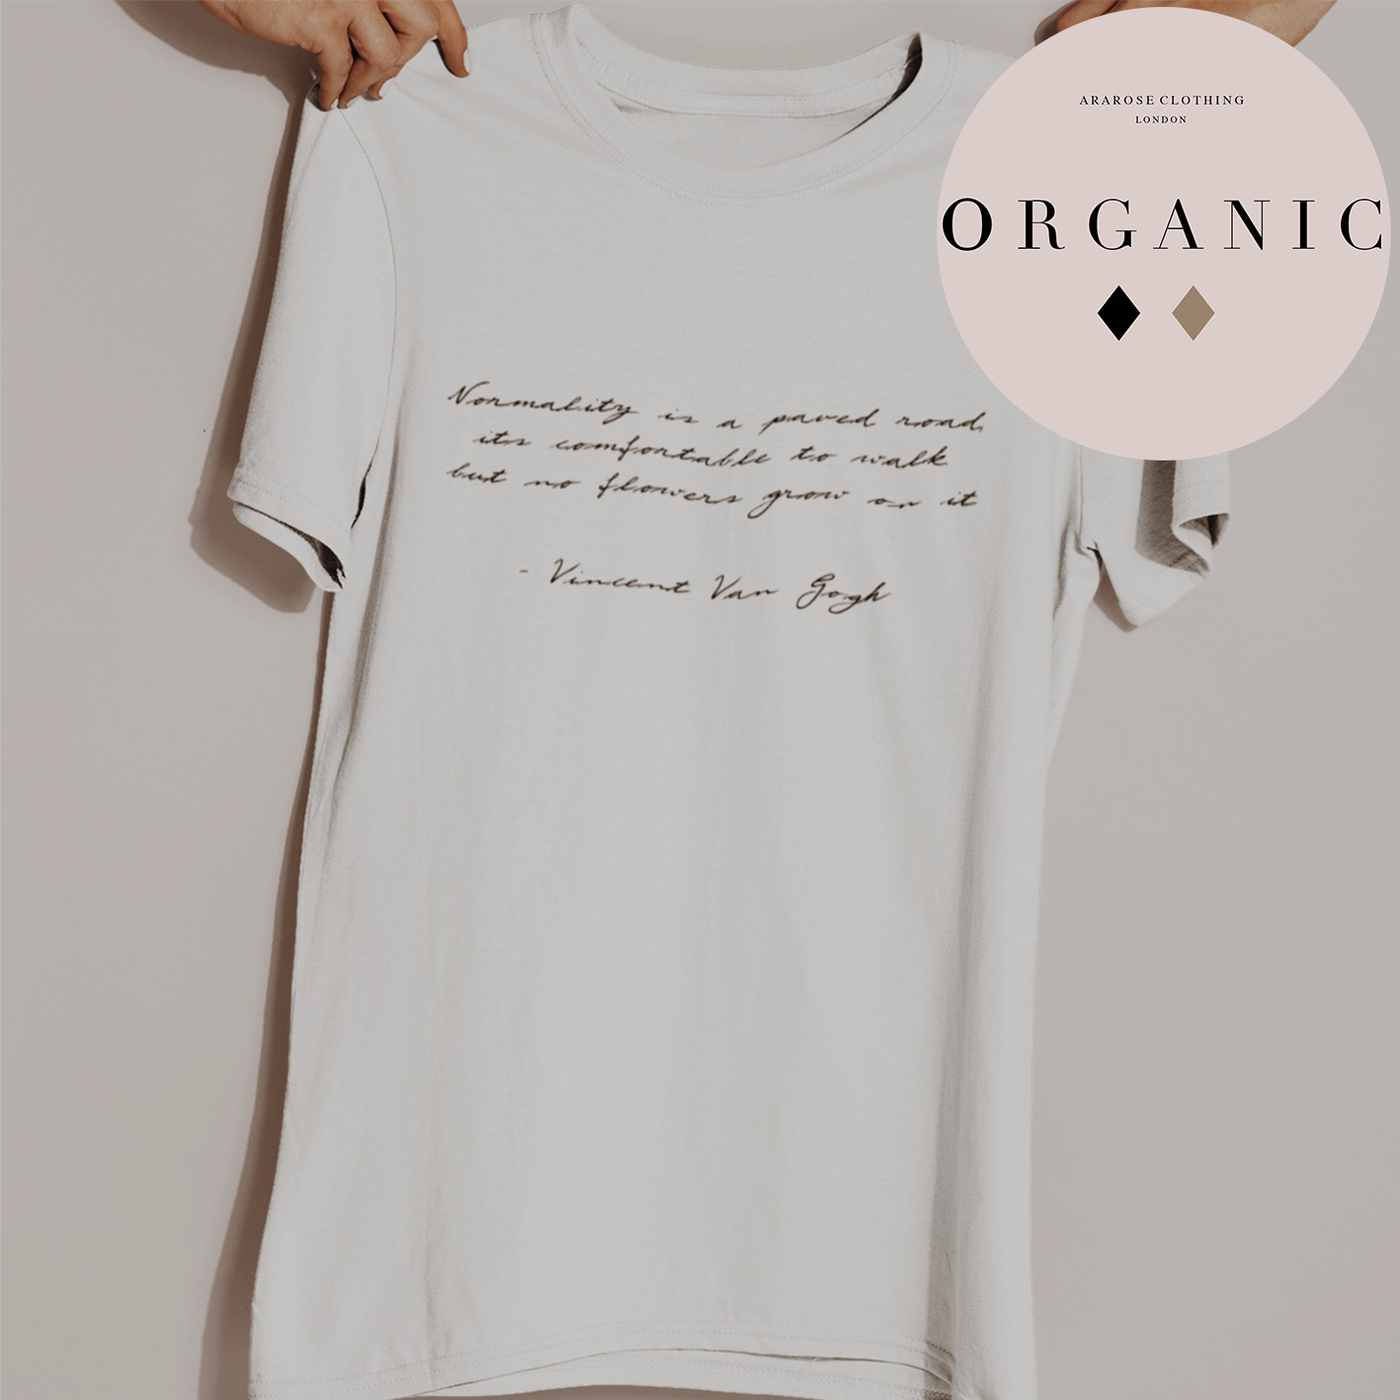 a hand holds up the organic statement tee